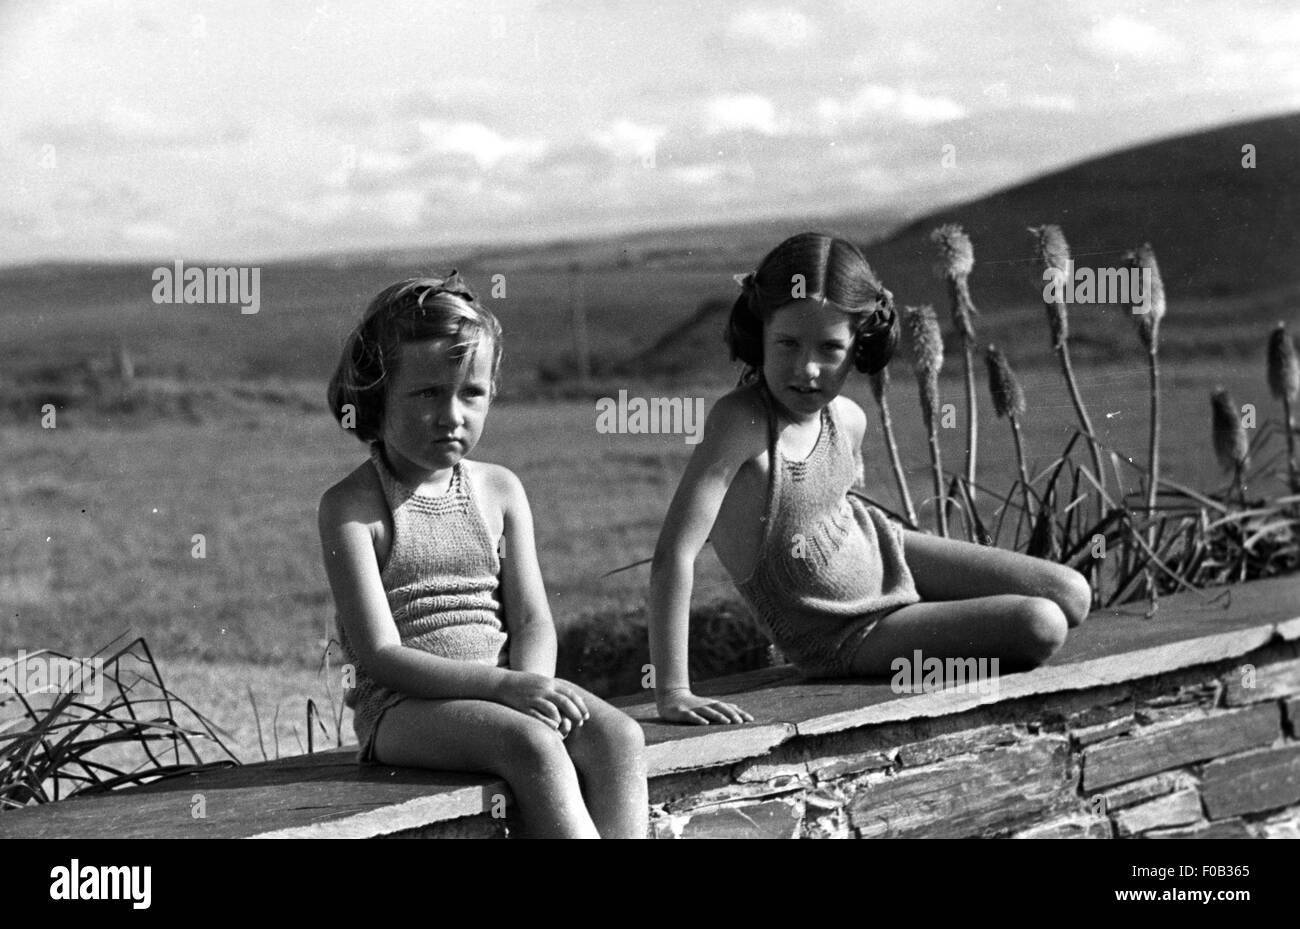 Two young girls in their bathing suits sitting on a garden wall - Stock Image